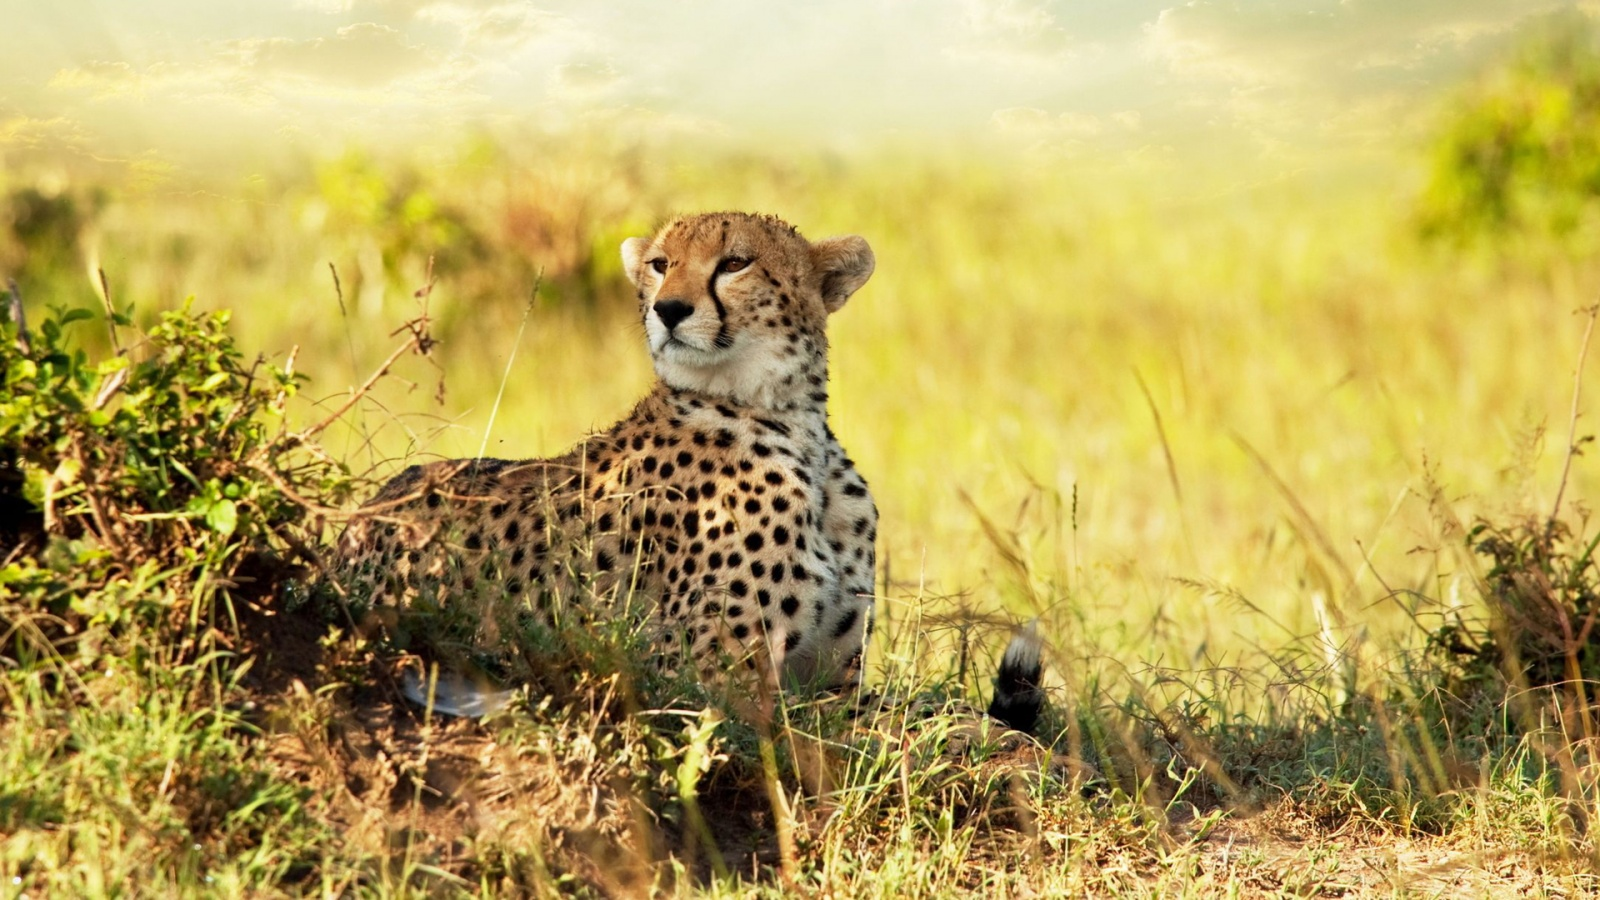 Africa Cheetah Wallpaper